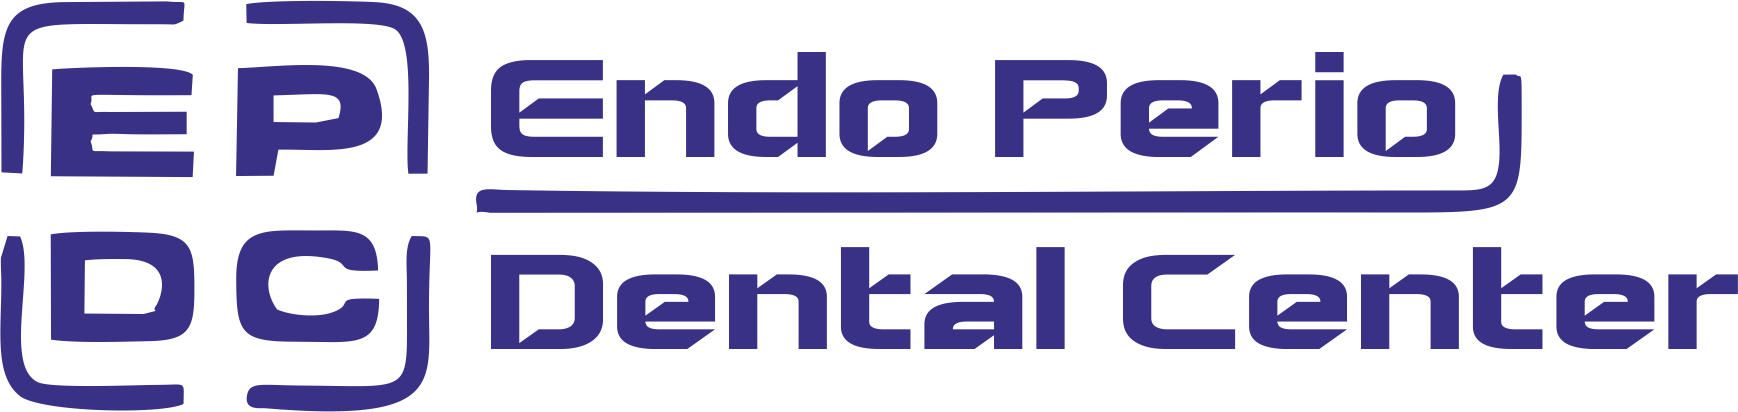 Endo Perio Dental Center